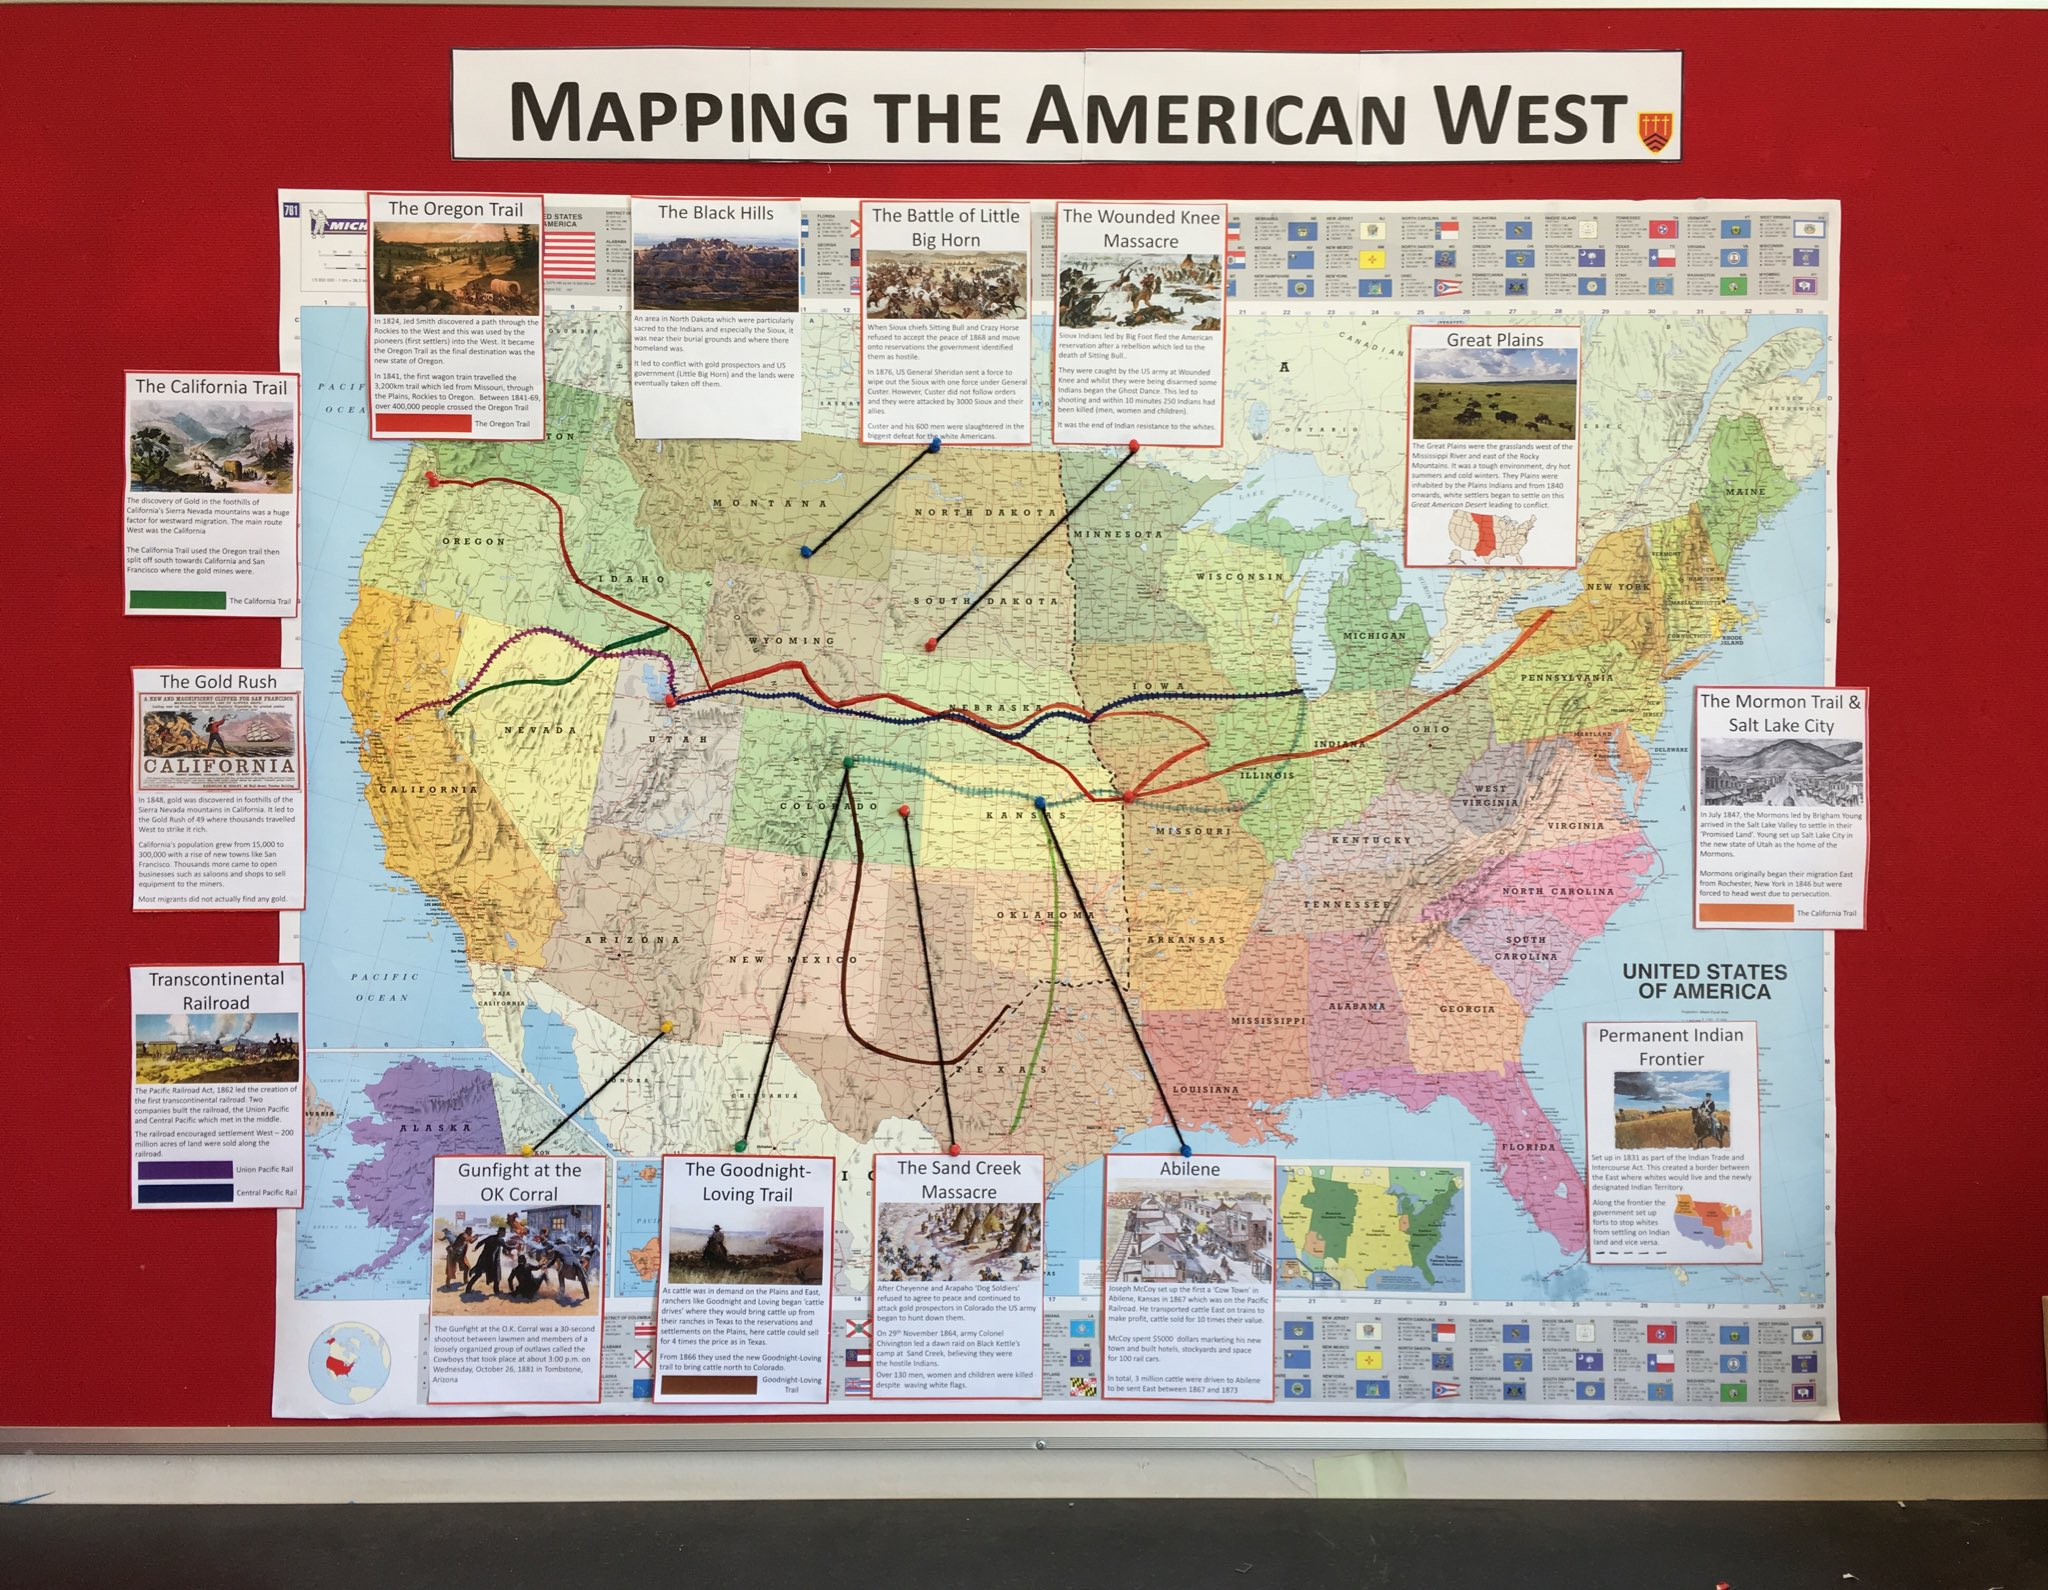 Greg thornton on twitter display 13 complete mapping the greg thornton on twitter display 13 complete mapping the american west edchat historyteacher ukedchat gcsehistory gumiabroncs Choice Image